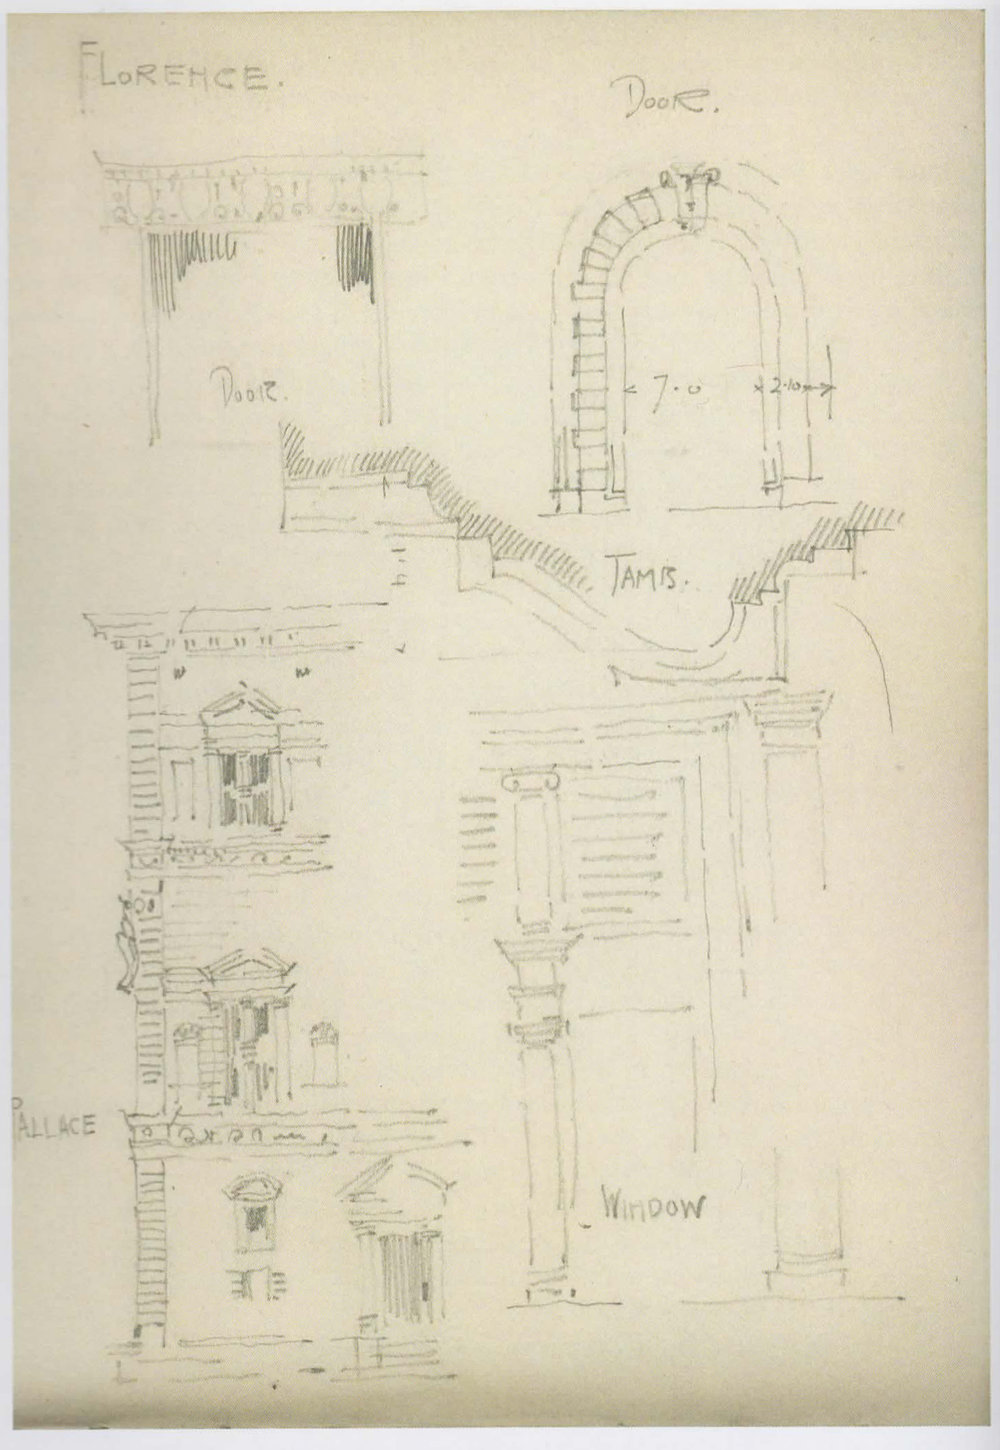 Mackintosh, Charles Rennie.  A Page from one of Macintosh's Italian Sketchbooks . 1891. Pencil. National Library of Ireland. New York.  Architects' Drawings: A Selection of Sketches by World Famous Architects Through History . Amsterdam: Elsevier/Architectural, 2005.  122. Print.